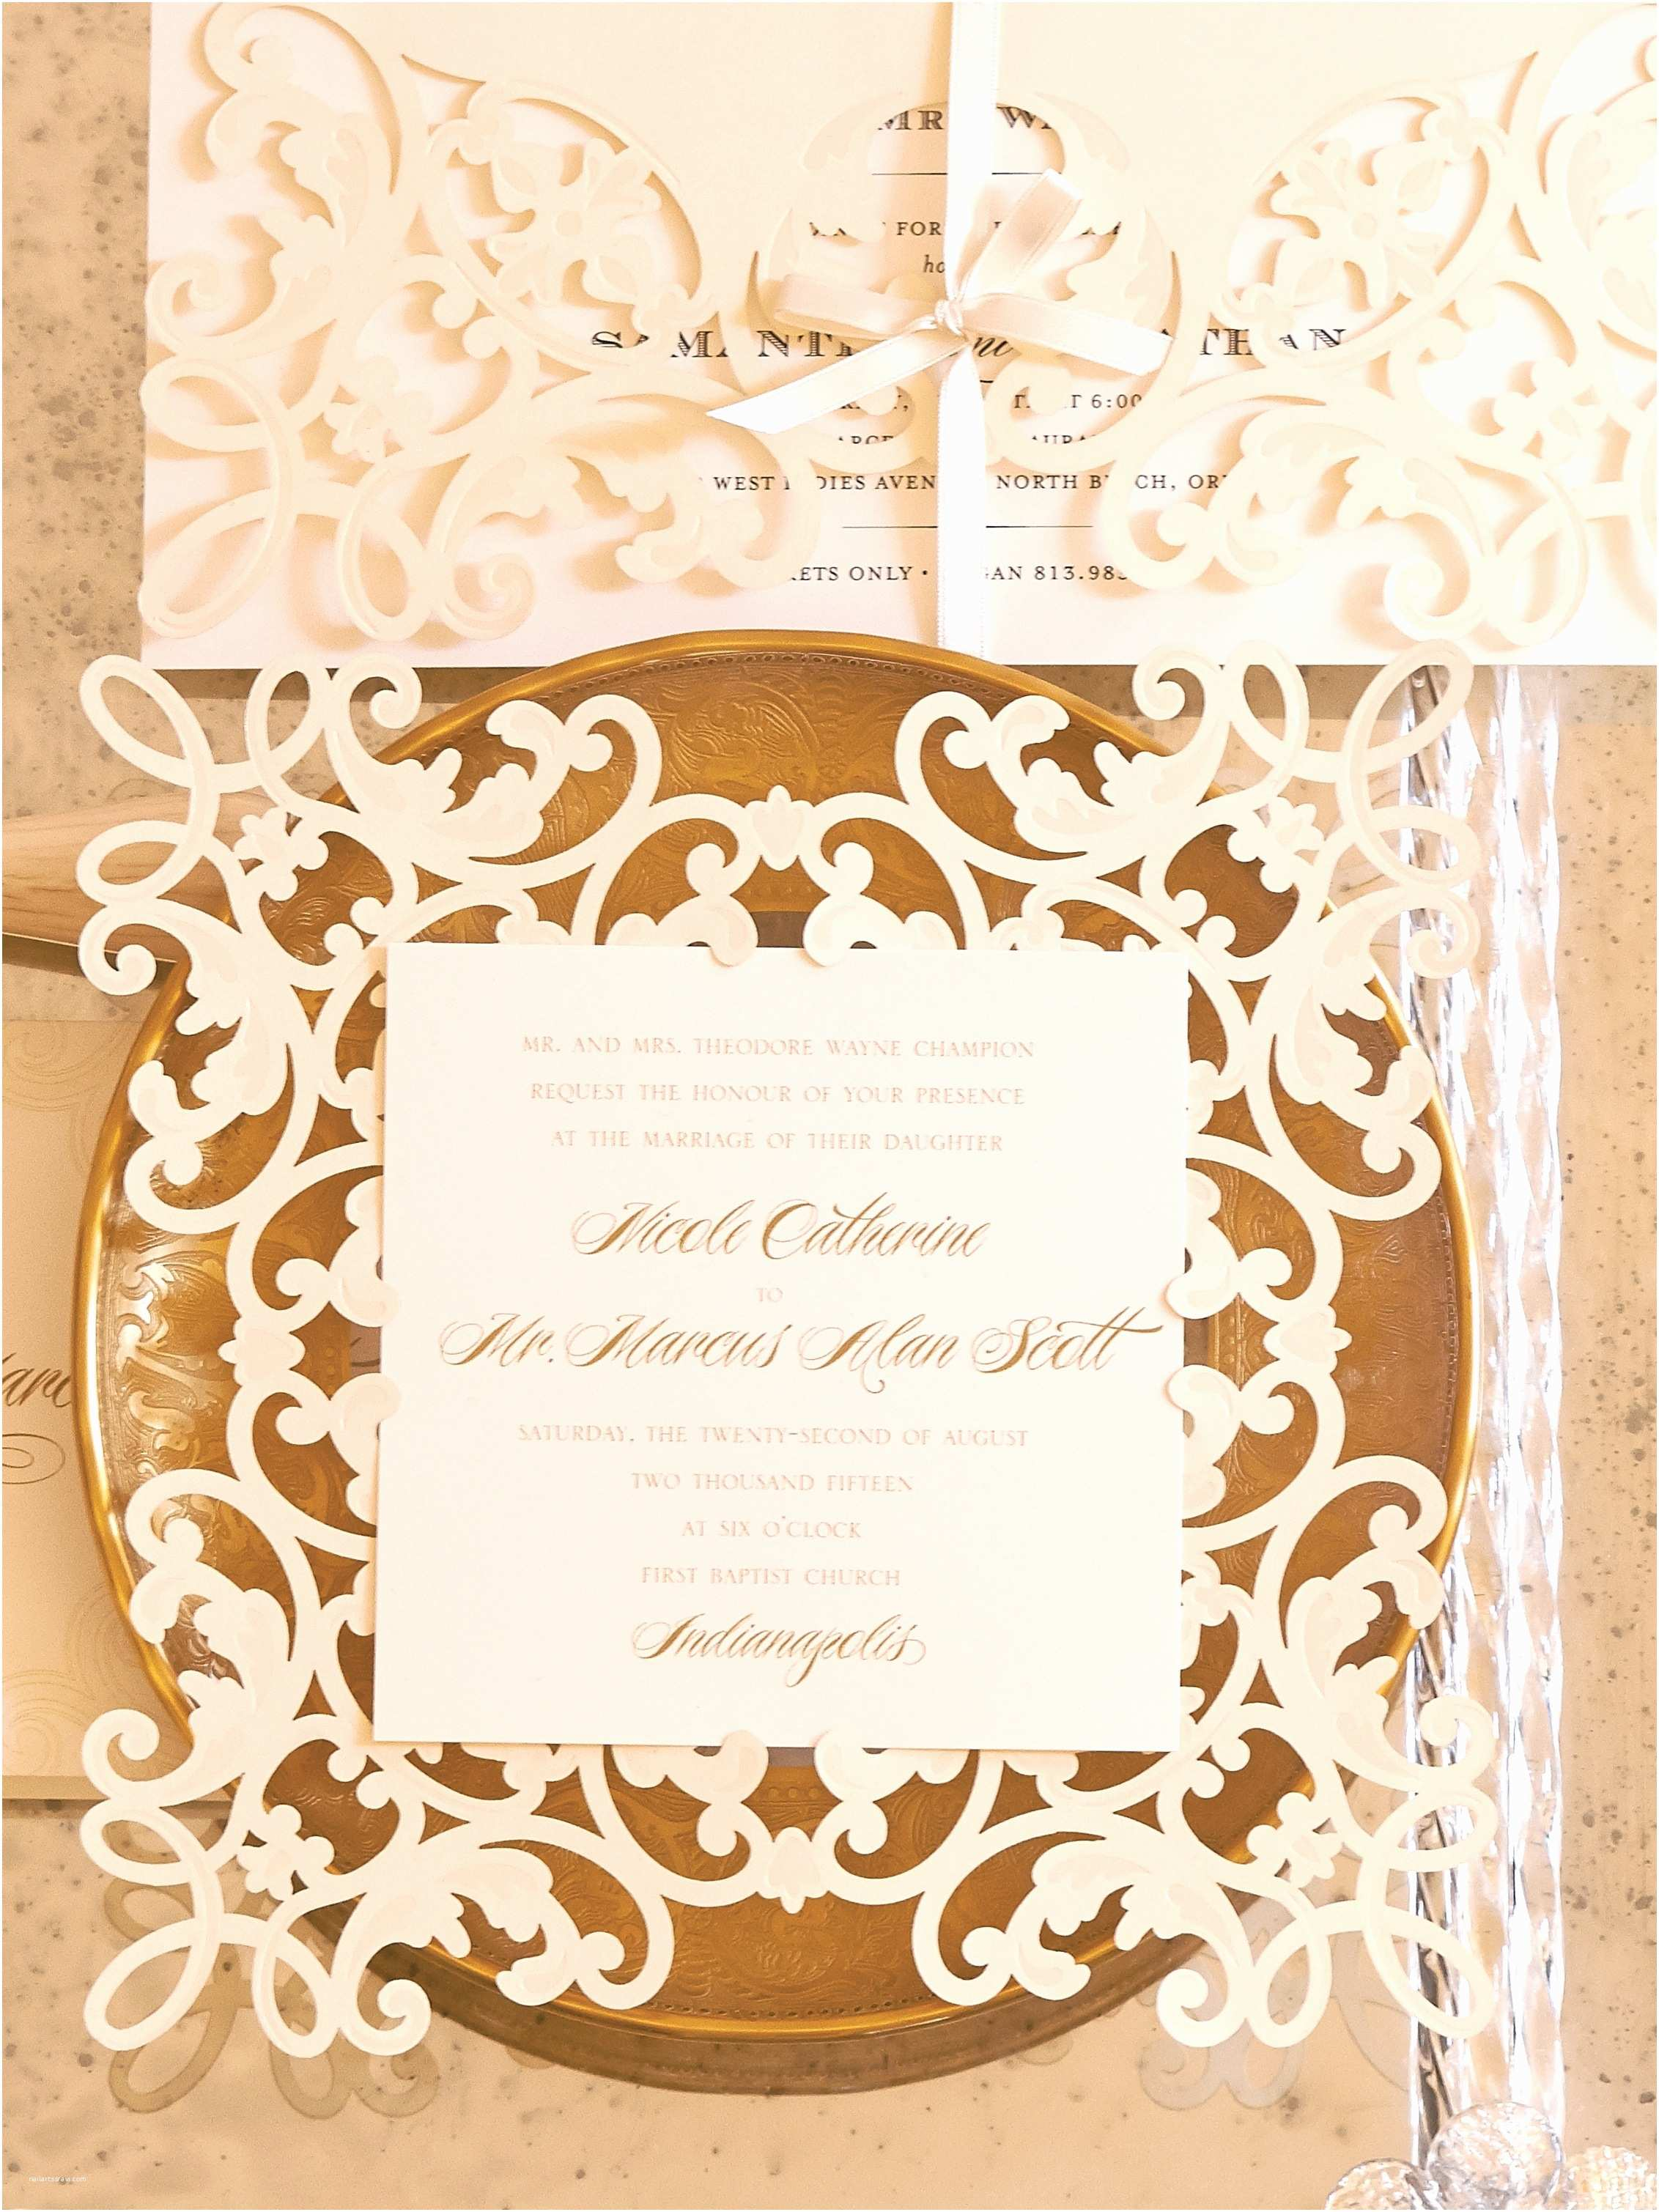 How to Make Your Wedding Invitations at Home Cricut Wedding Invitations Awesome Make Your Own Wedding